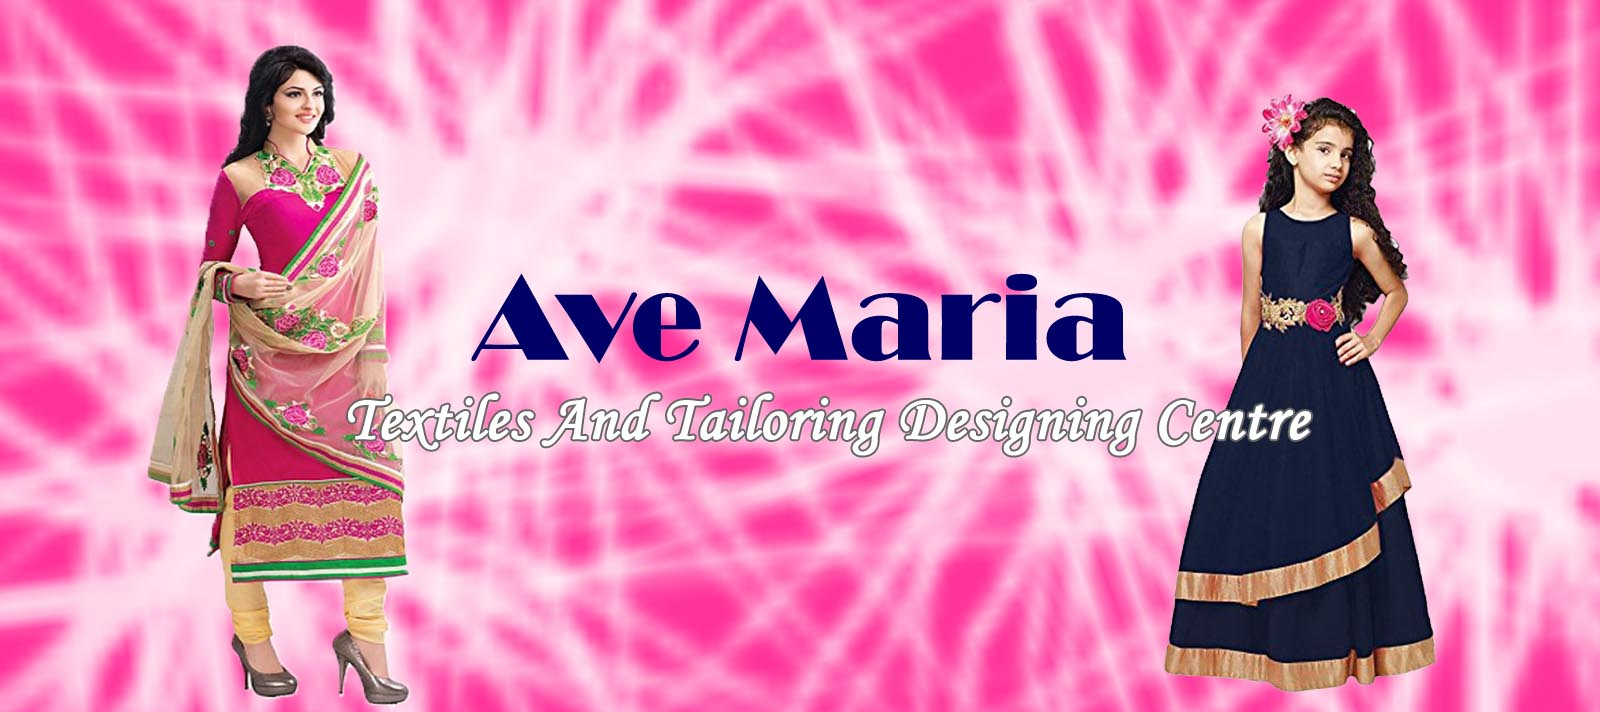 NAME Ave Maria Textiles And Tailoring Designing Centre